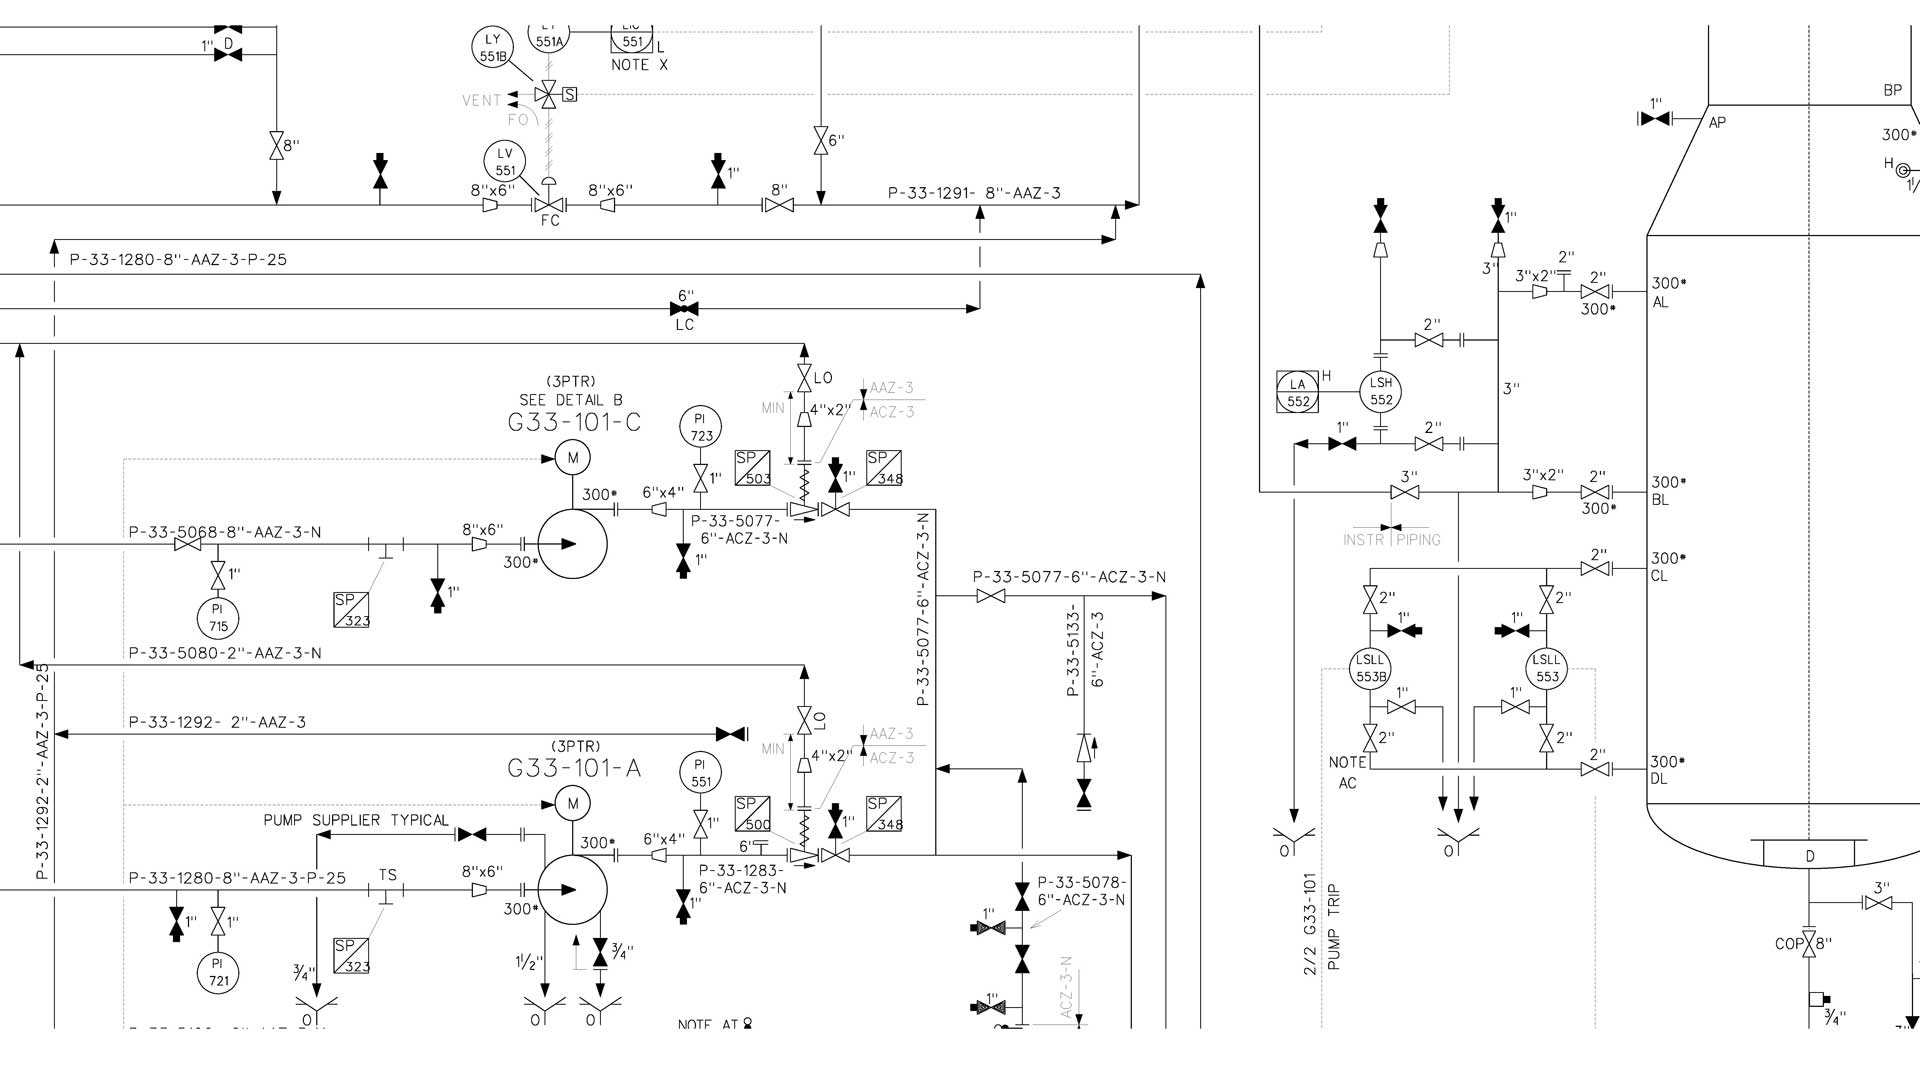 hight resolution of p id piping and instrumentation diagram